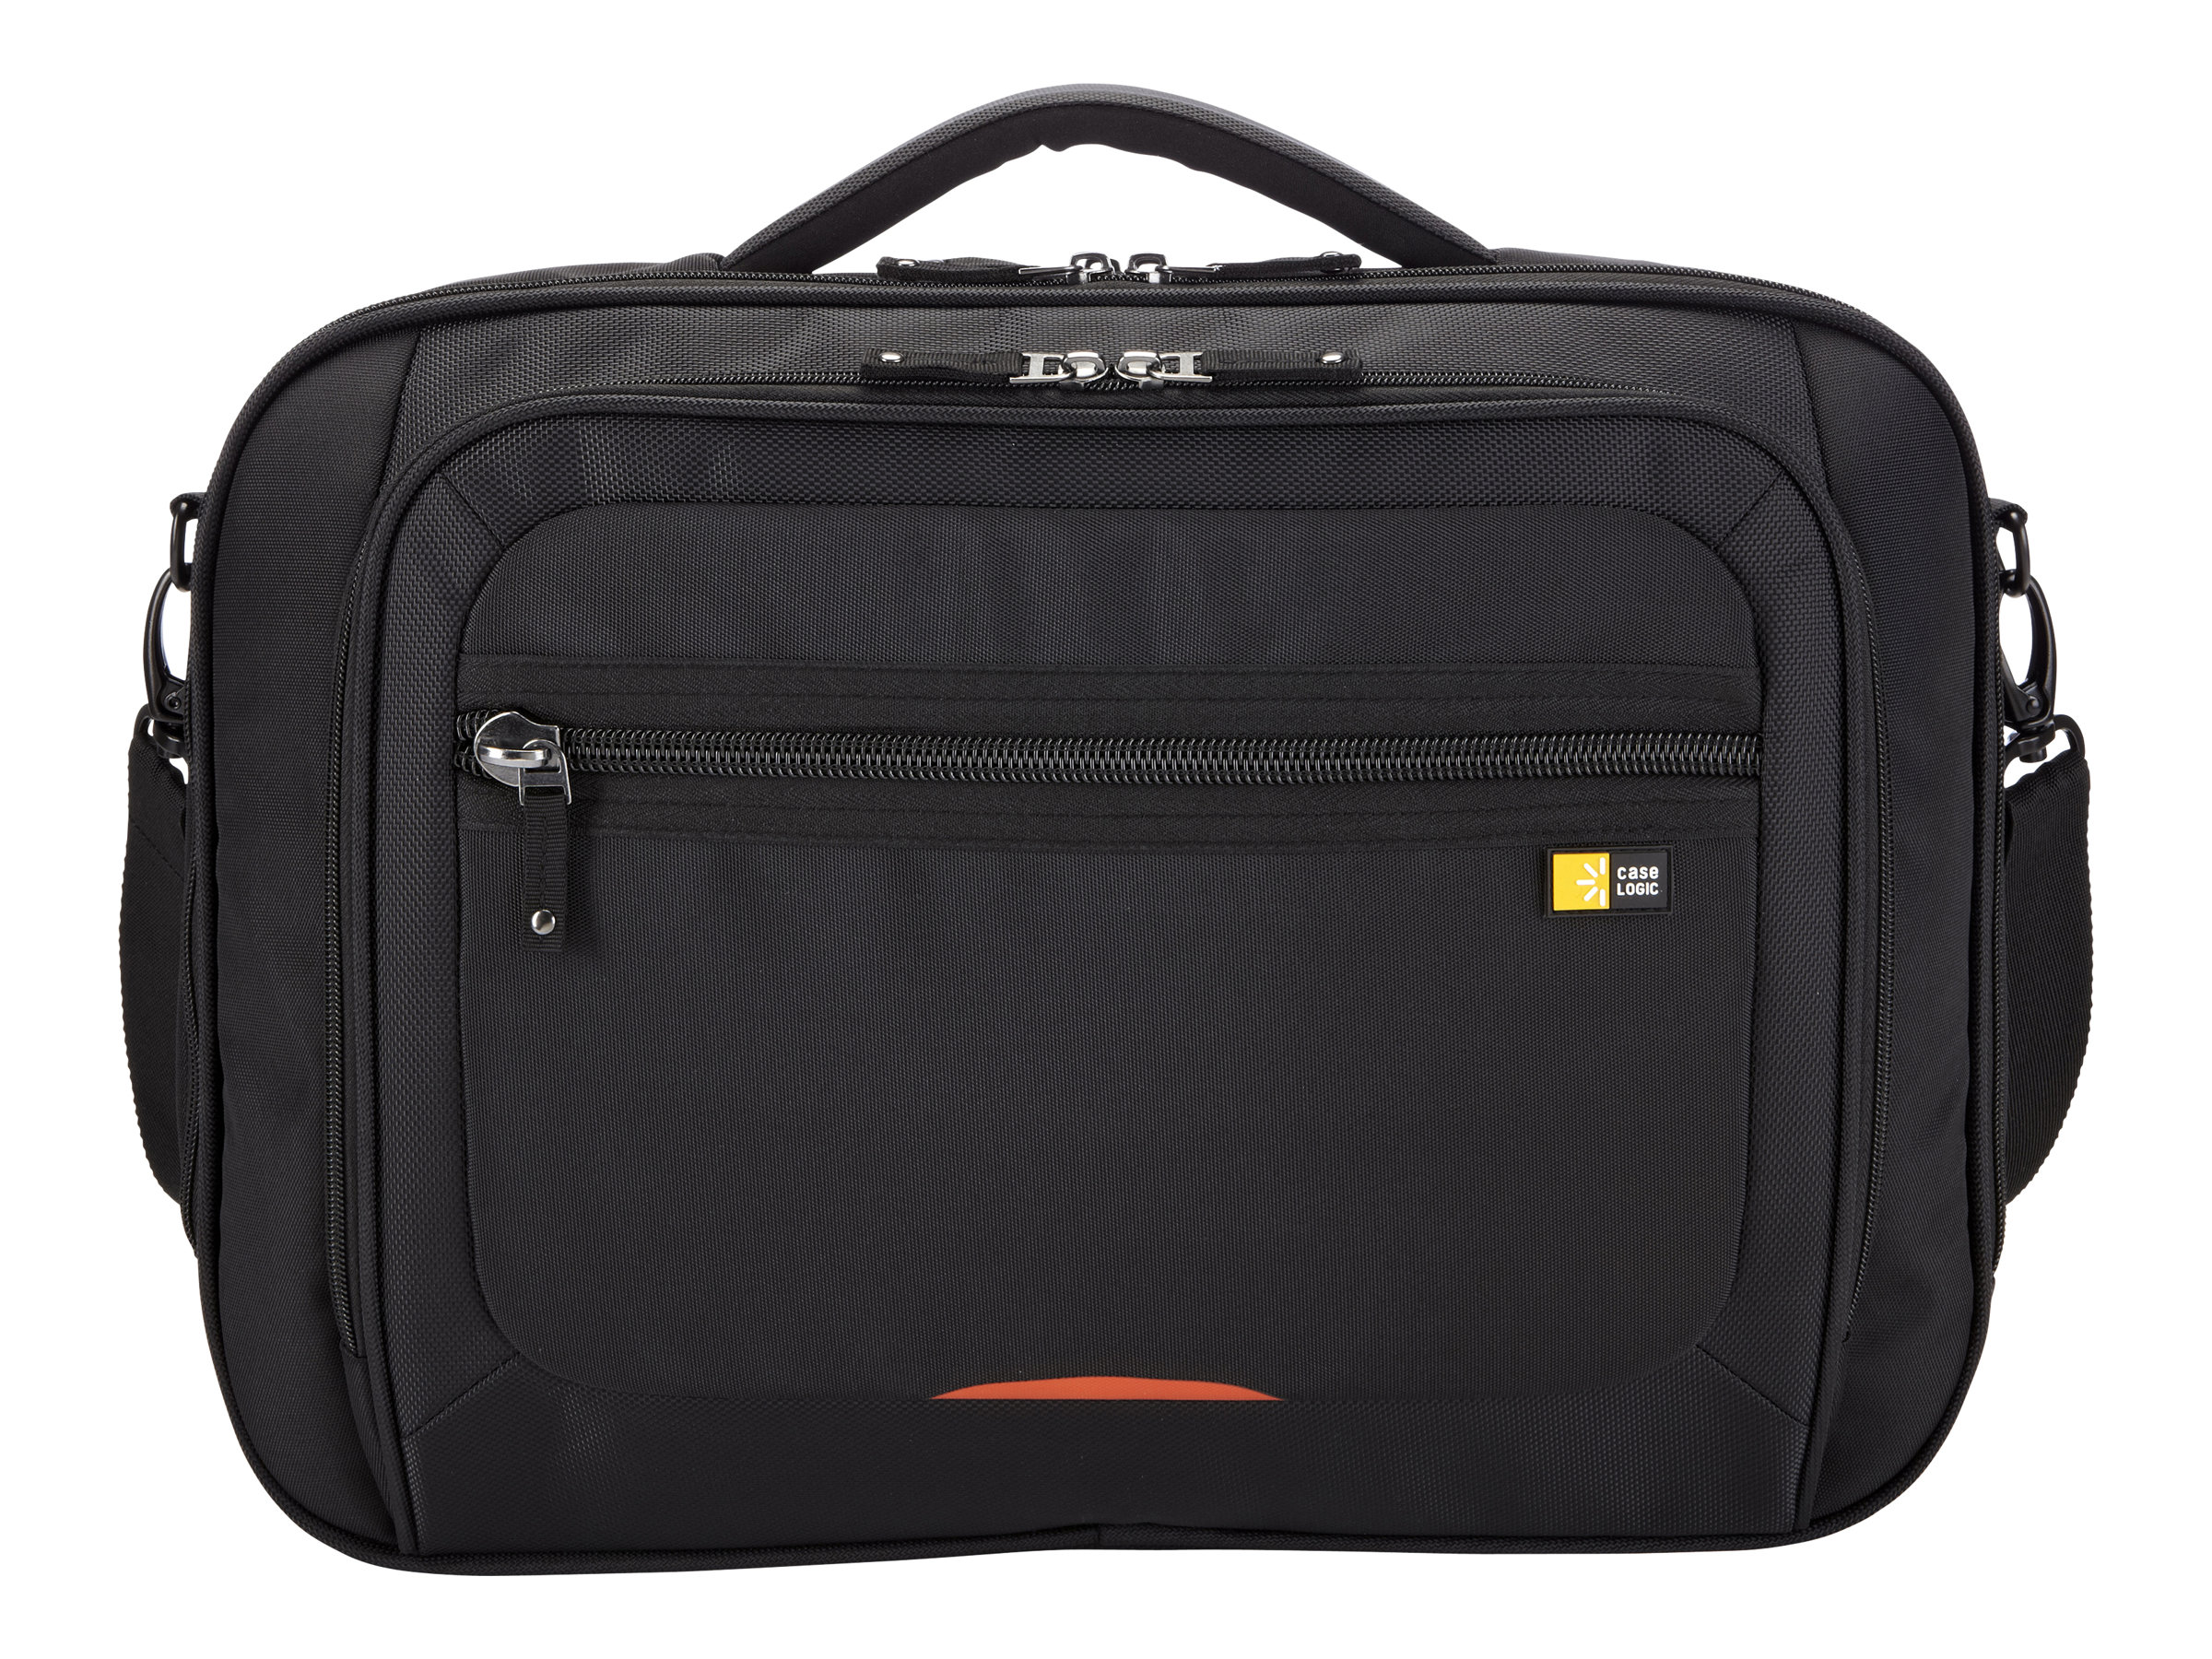 Case Logic ZLC-216BLACK Image 1